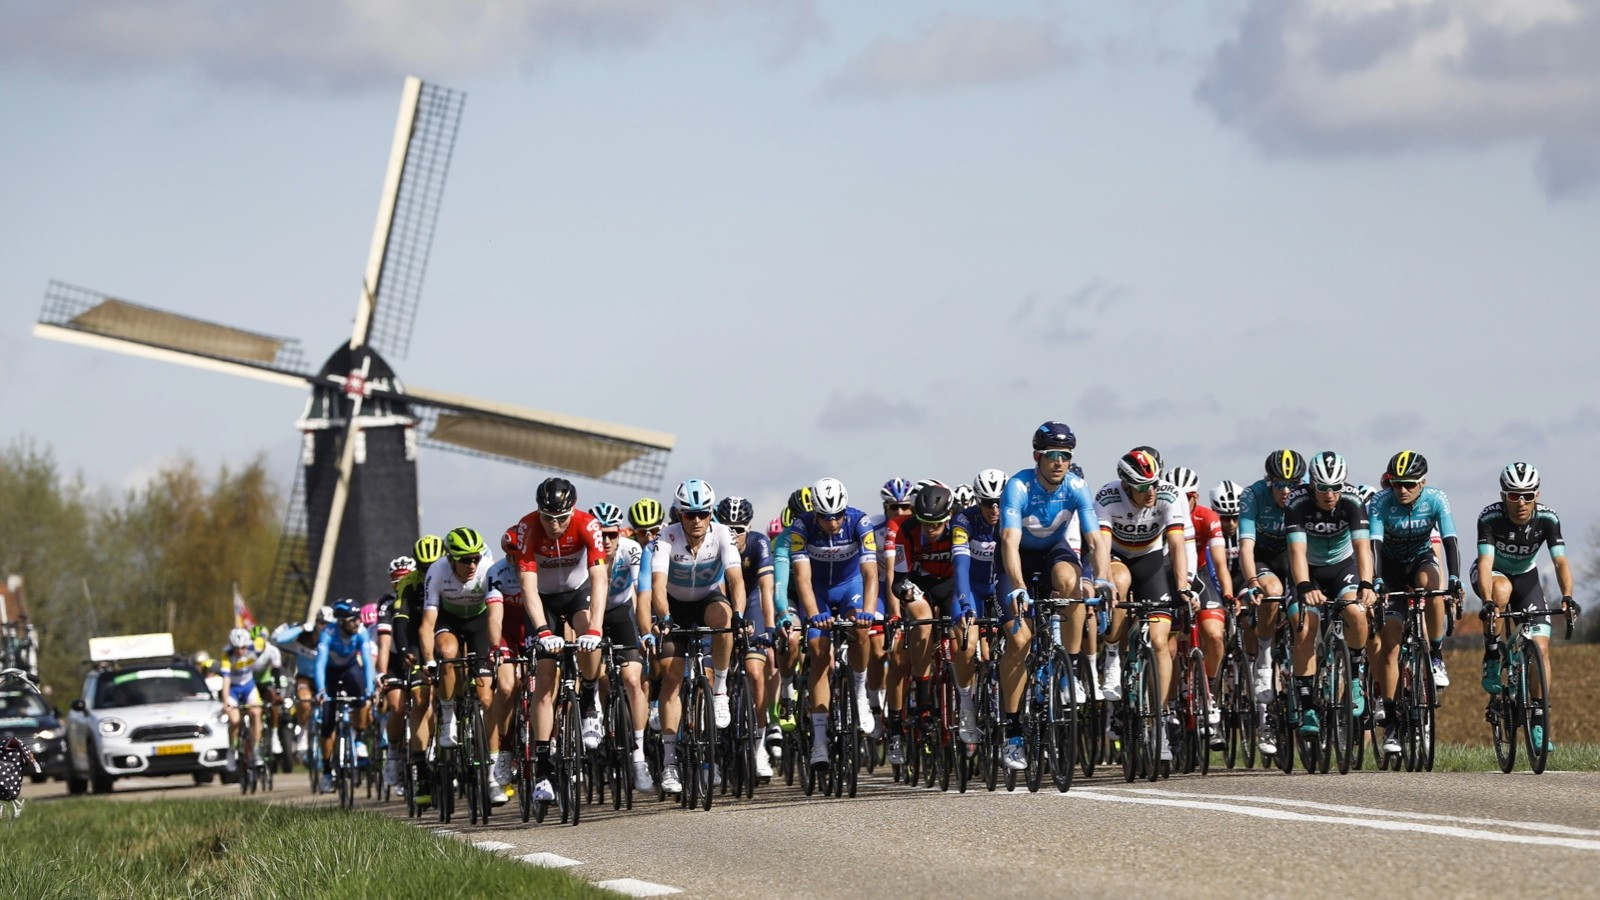 The 2019 route for the Amstel Gold Race in the Netherlands is still to be finalised